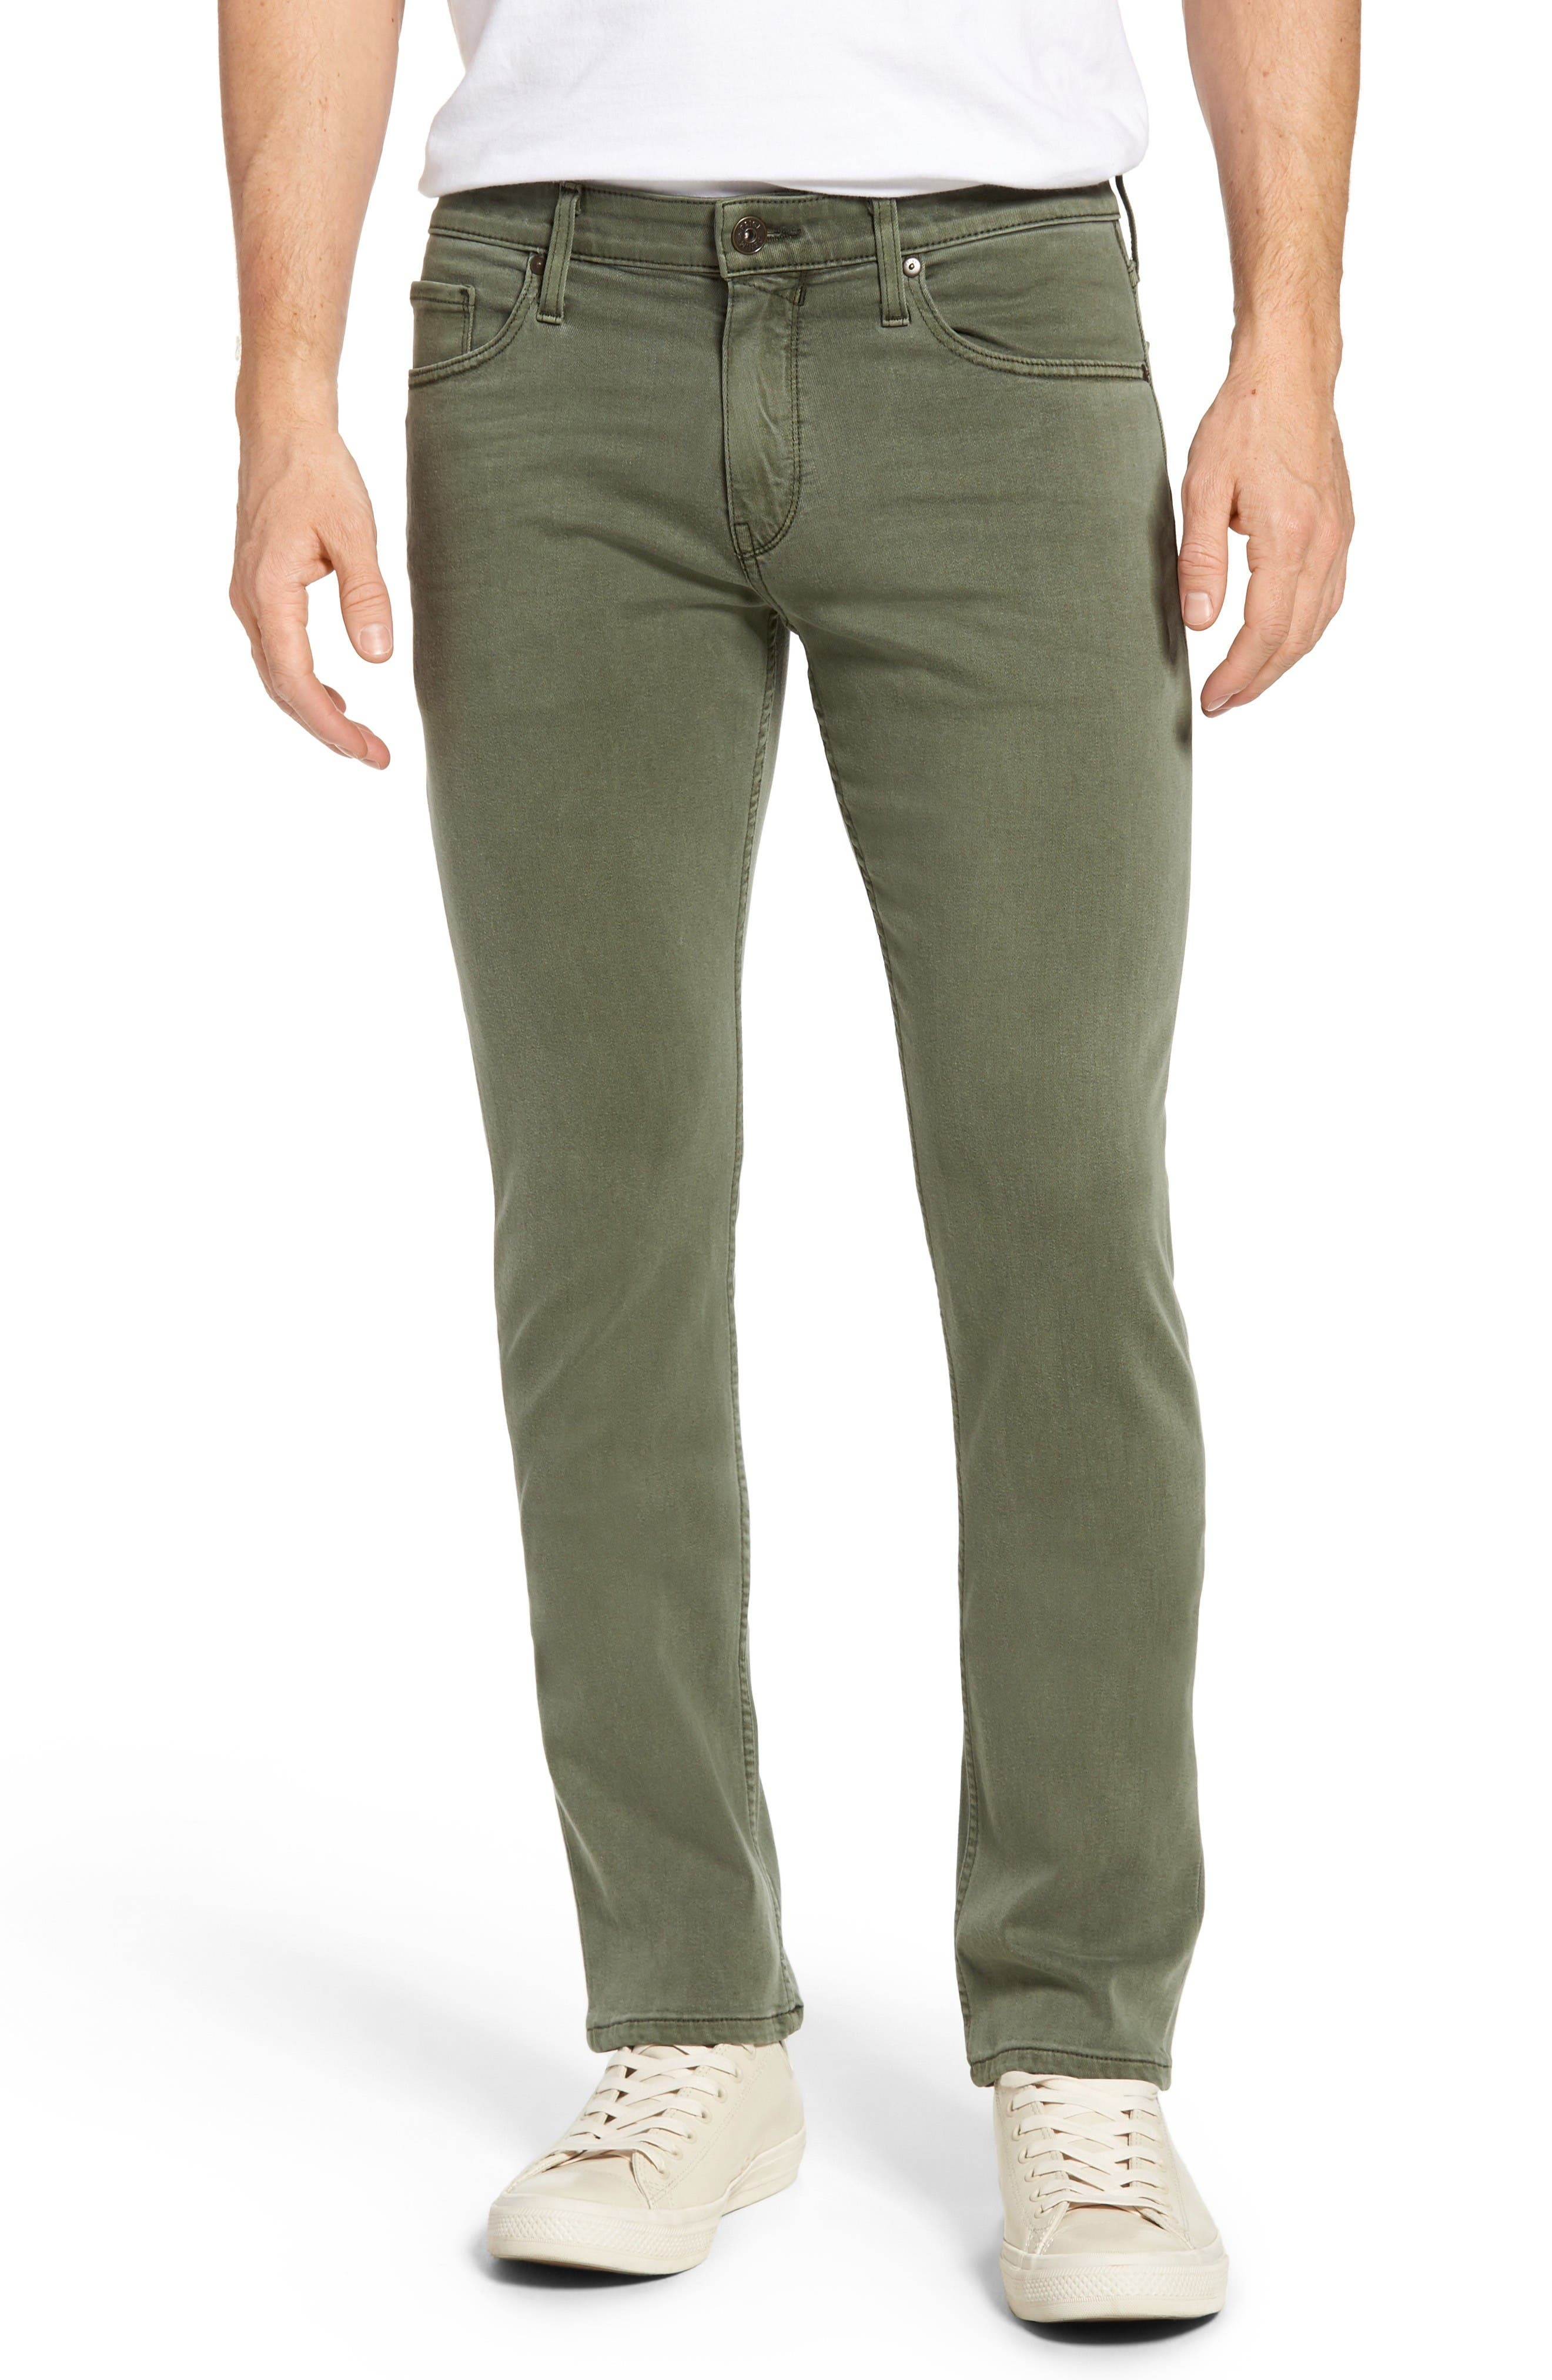 Transcend - Federal Slim Straight Leg Jeans,                             Main thumbnail 1, color,                             Green House